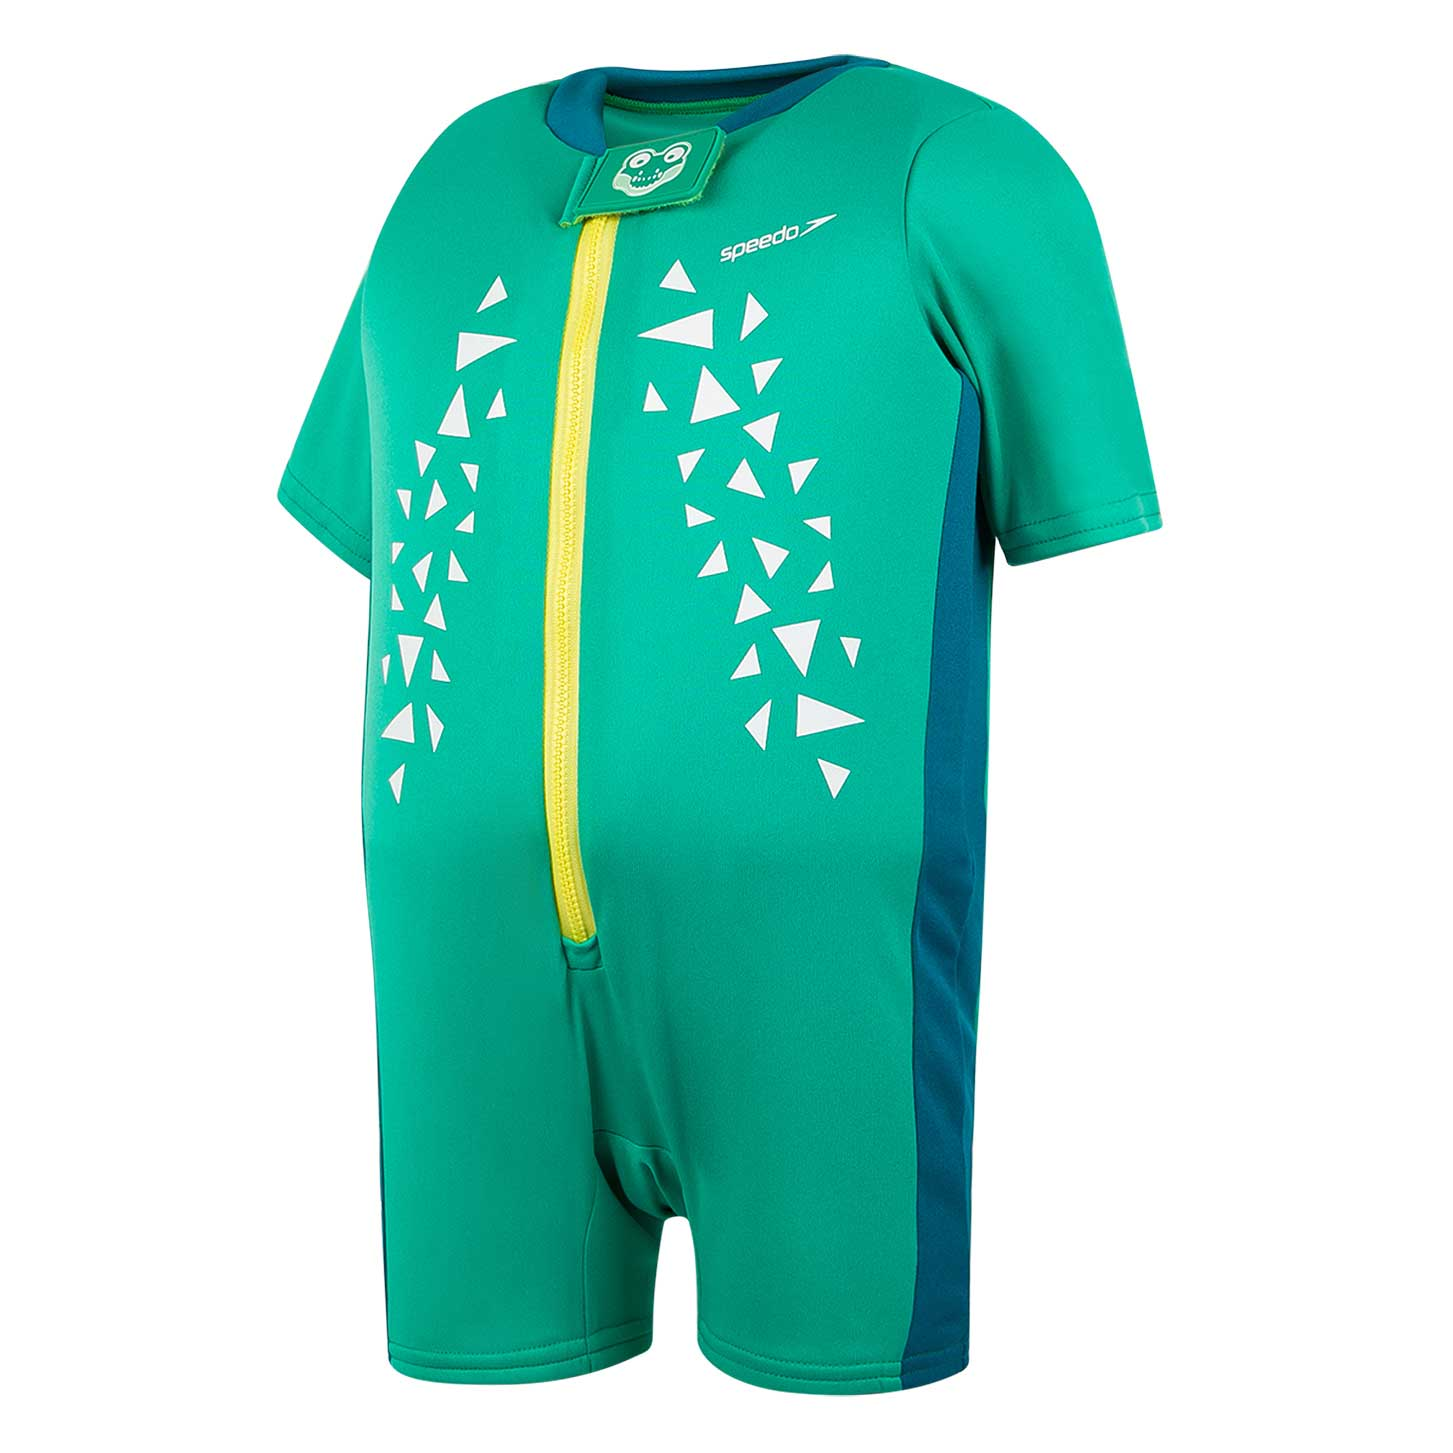 Speedo Toddler Float Suit - Cosmos/Emerald